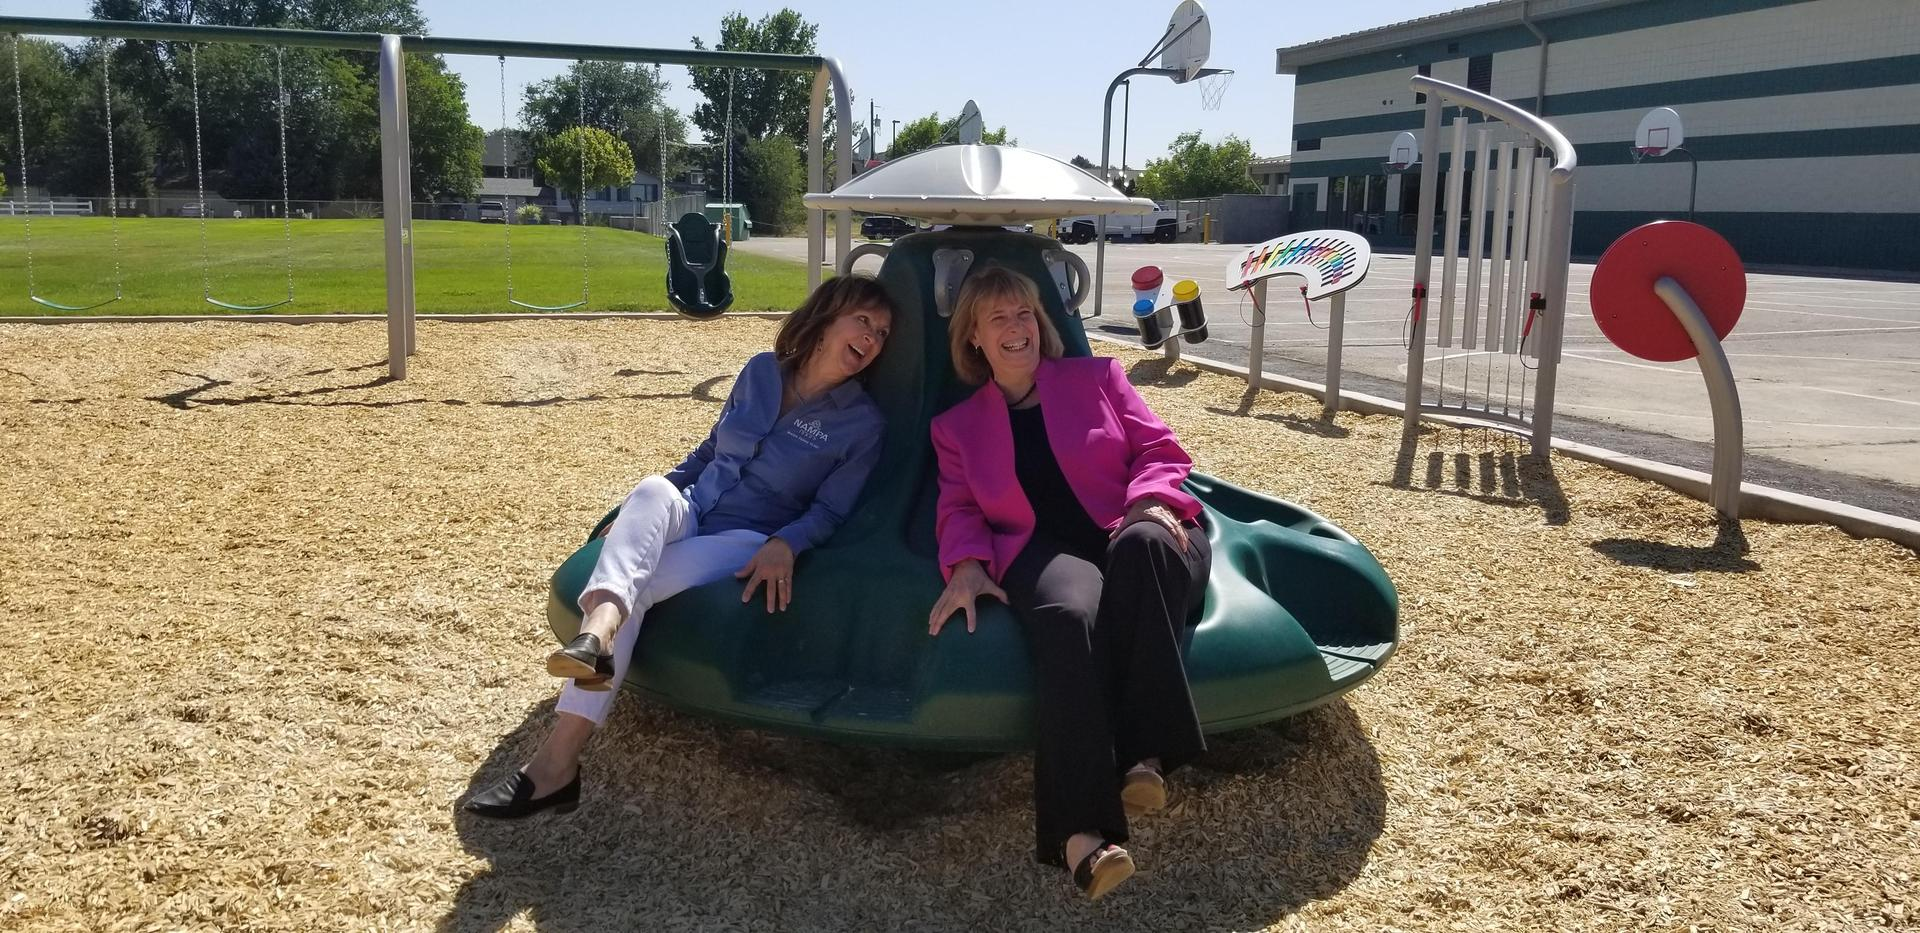 Superintendent Paula Kellerer and Mayor Debbie Kling take a spin on the merry-go-round at Iowa Elementary School.